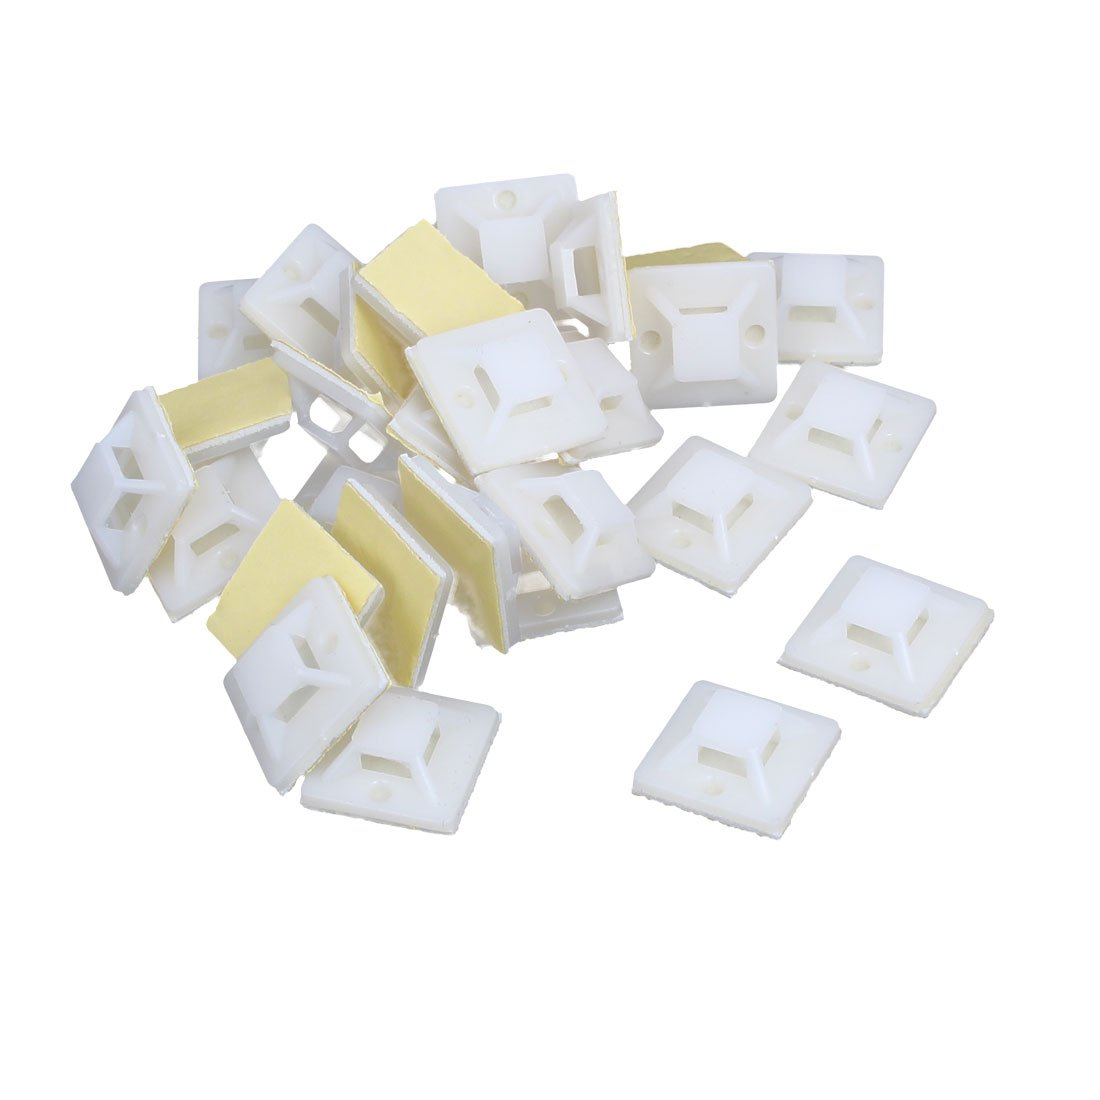 sourcing map PA66 Square Self-Adhesive Fixed Cable Lines Tie Base 20mm Width 30pcs White